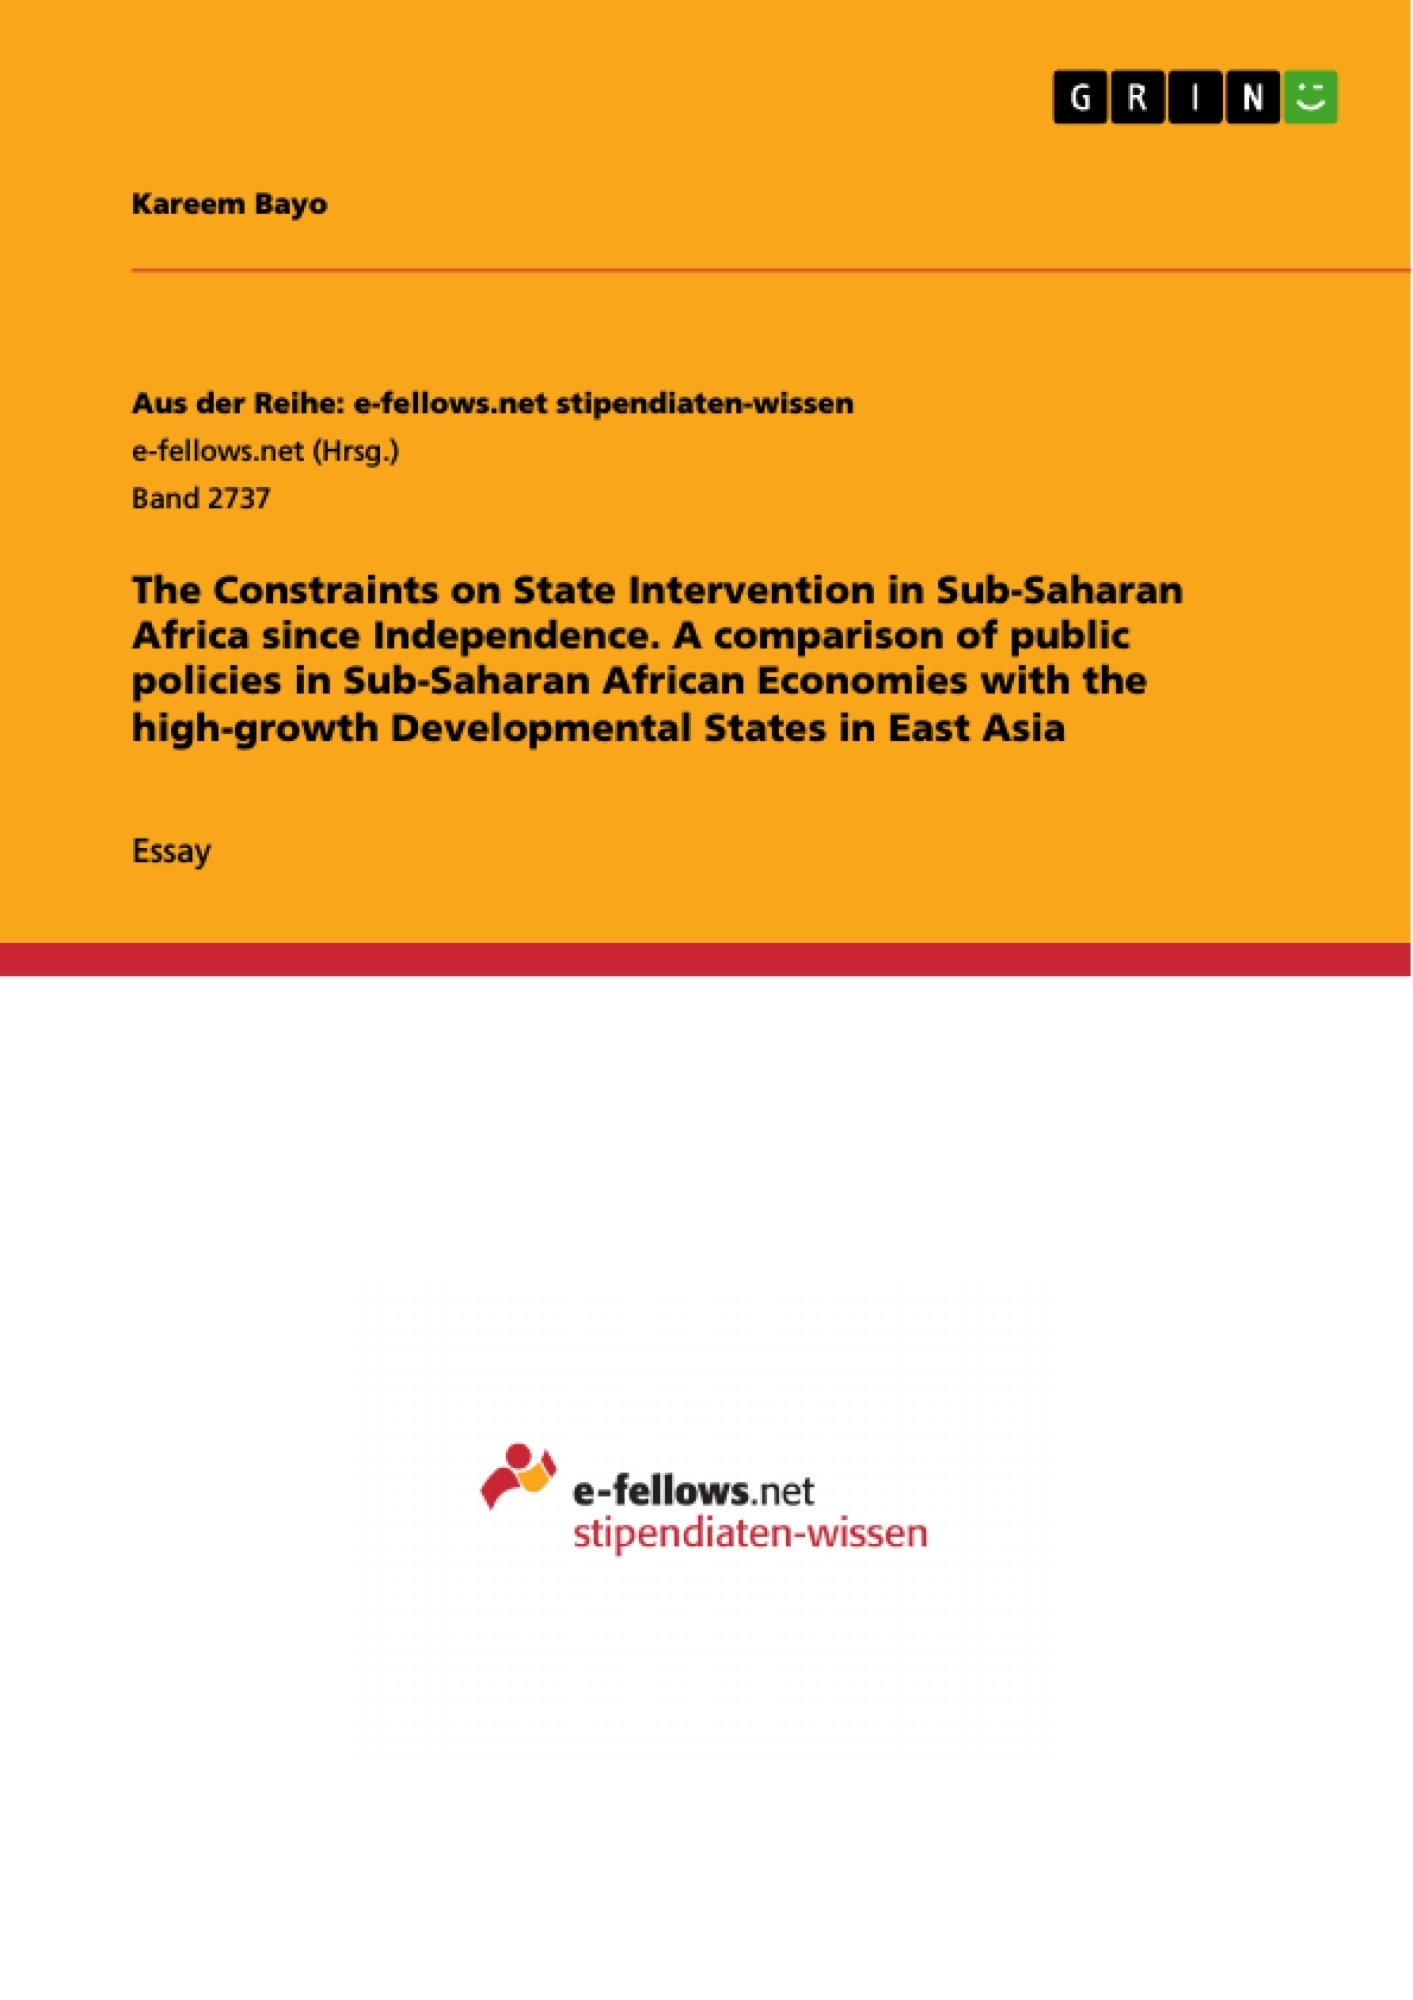 Title: The Constraints on State Intervention in Sub-Saharan Africa since Independence. A comparison of public policies in Sub-Saharan African Economies with the high-growth Developmental States in East Asia